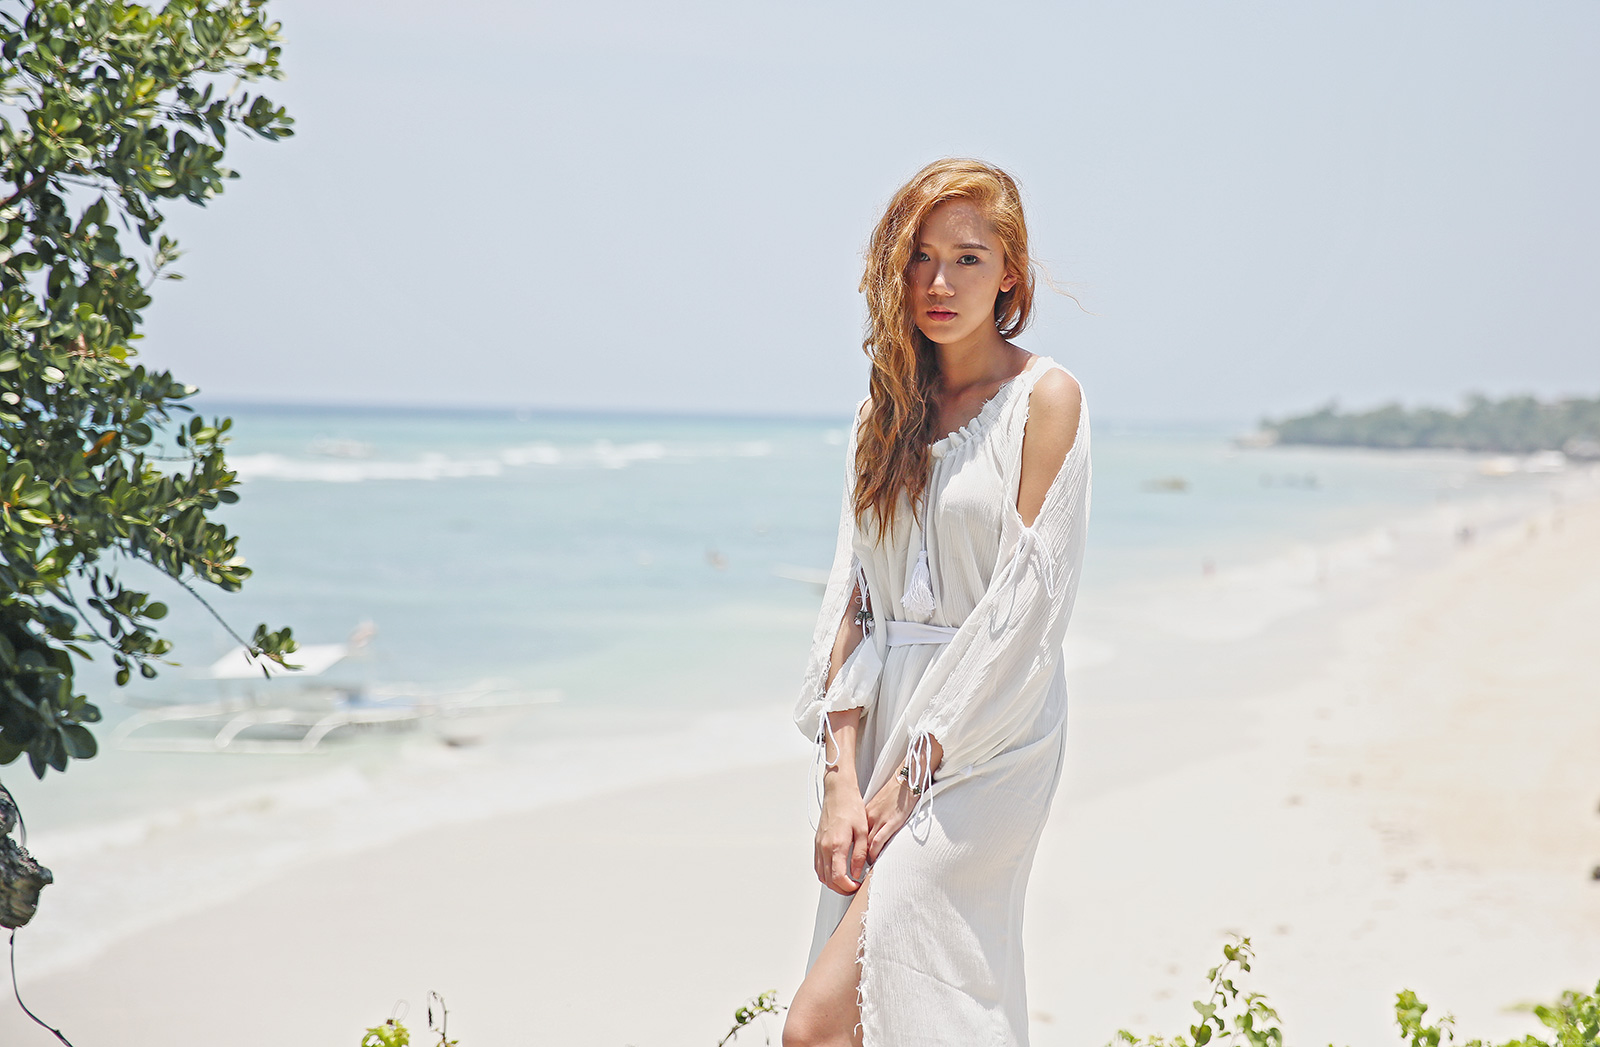 SheIn Beach Dress at Amorita, Boholl | www.itscamilleco.com